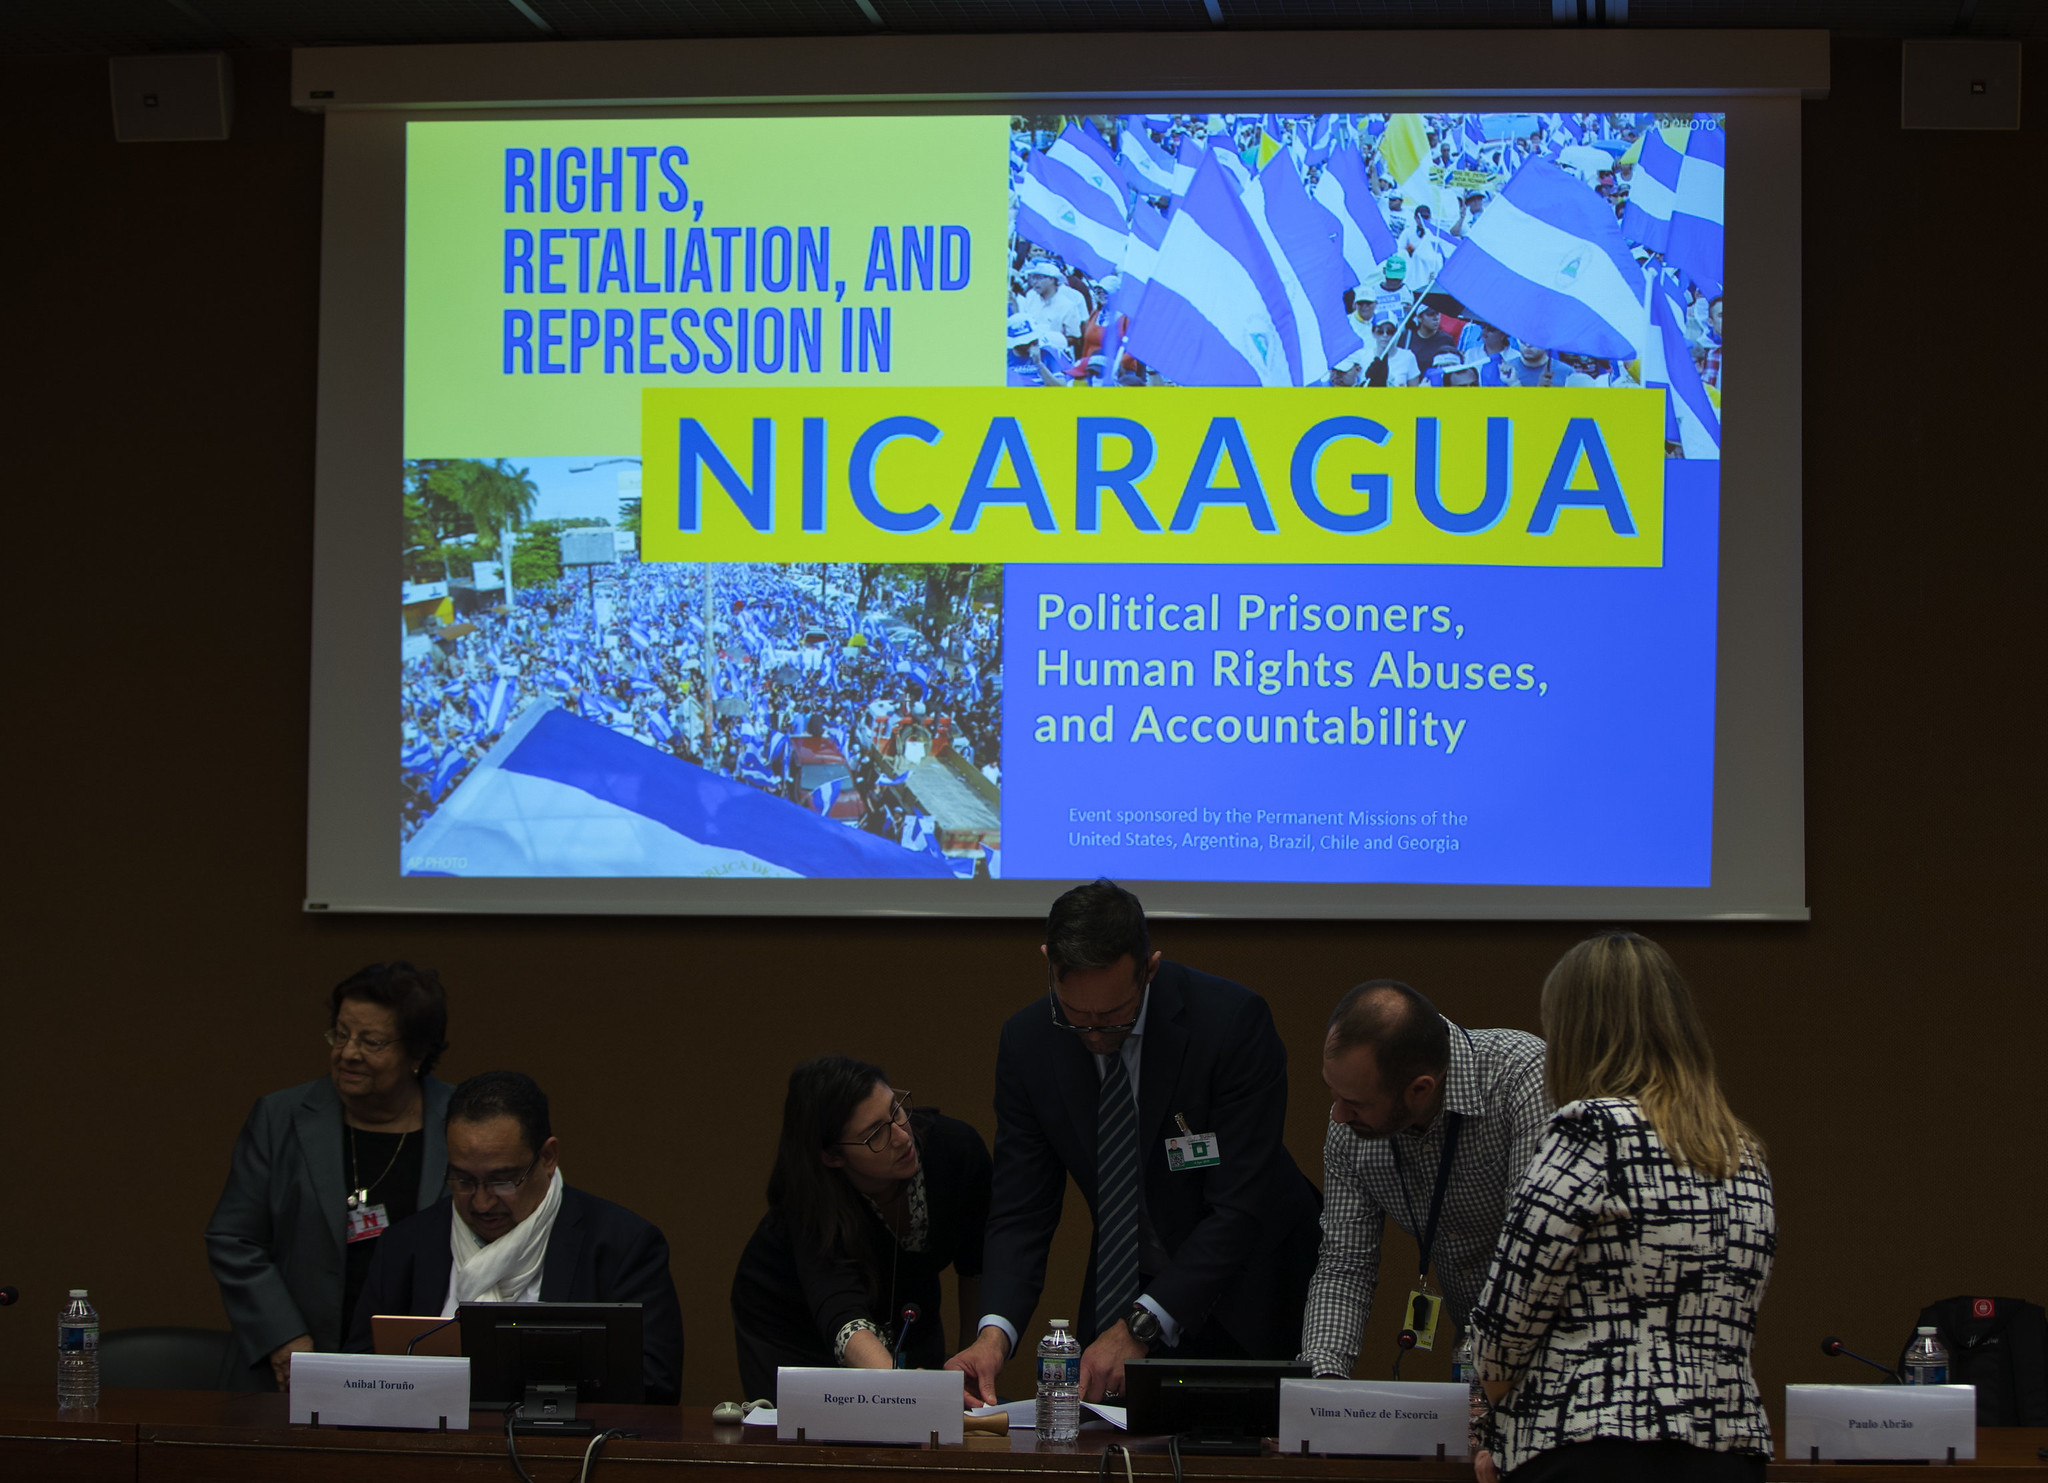 The Rise And Fall Of Nicaragua's 'Human Rights' Organizations